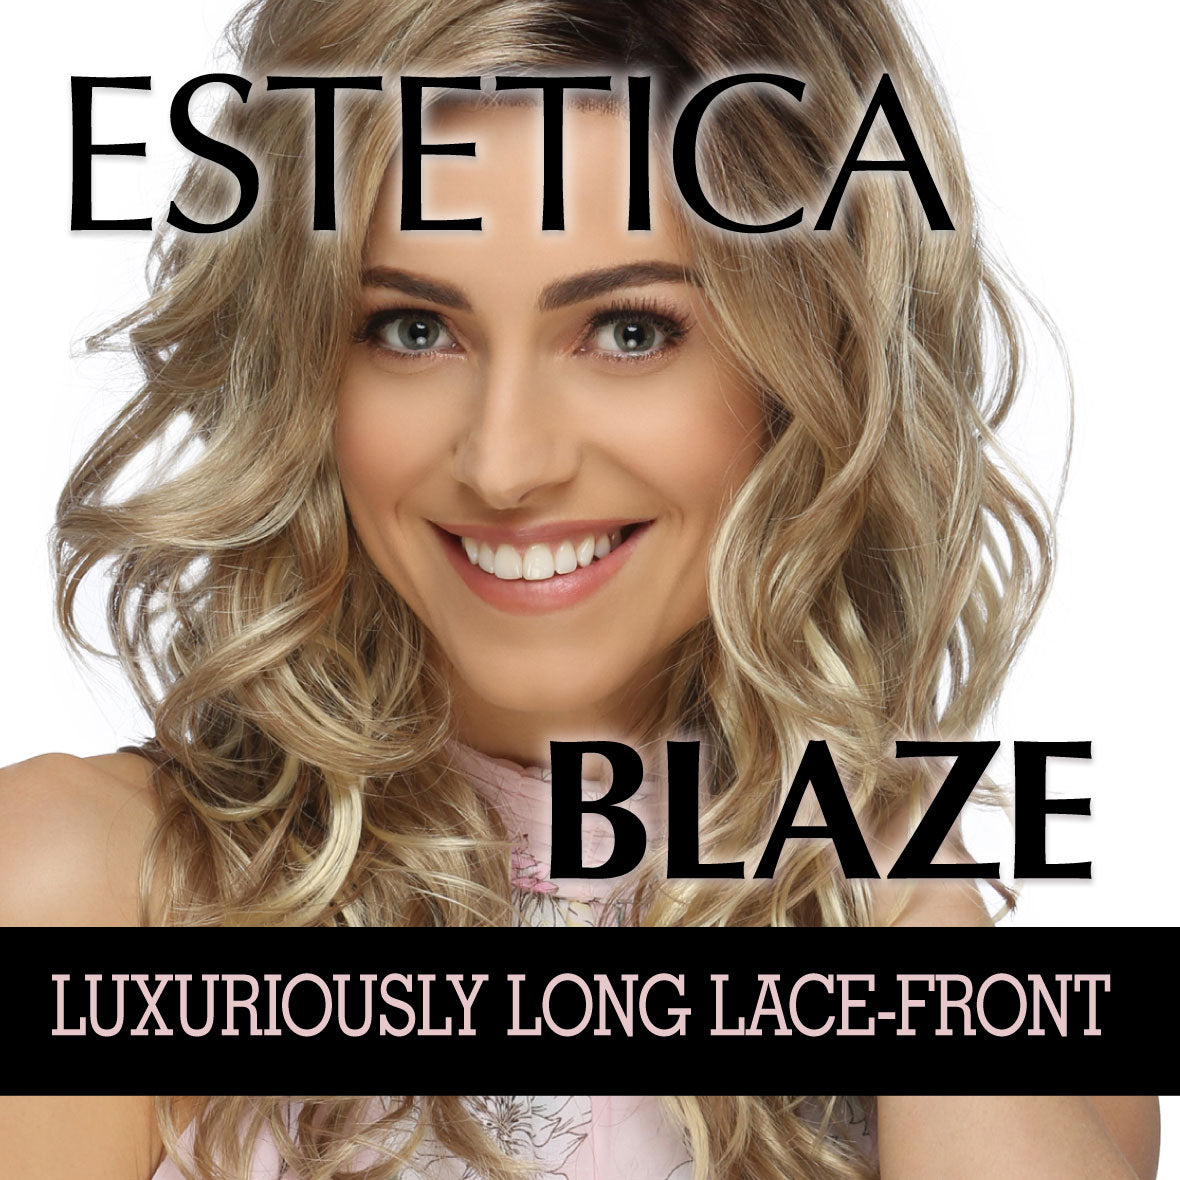 Estetica Designs BLAZE Lace-front luxury